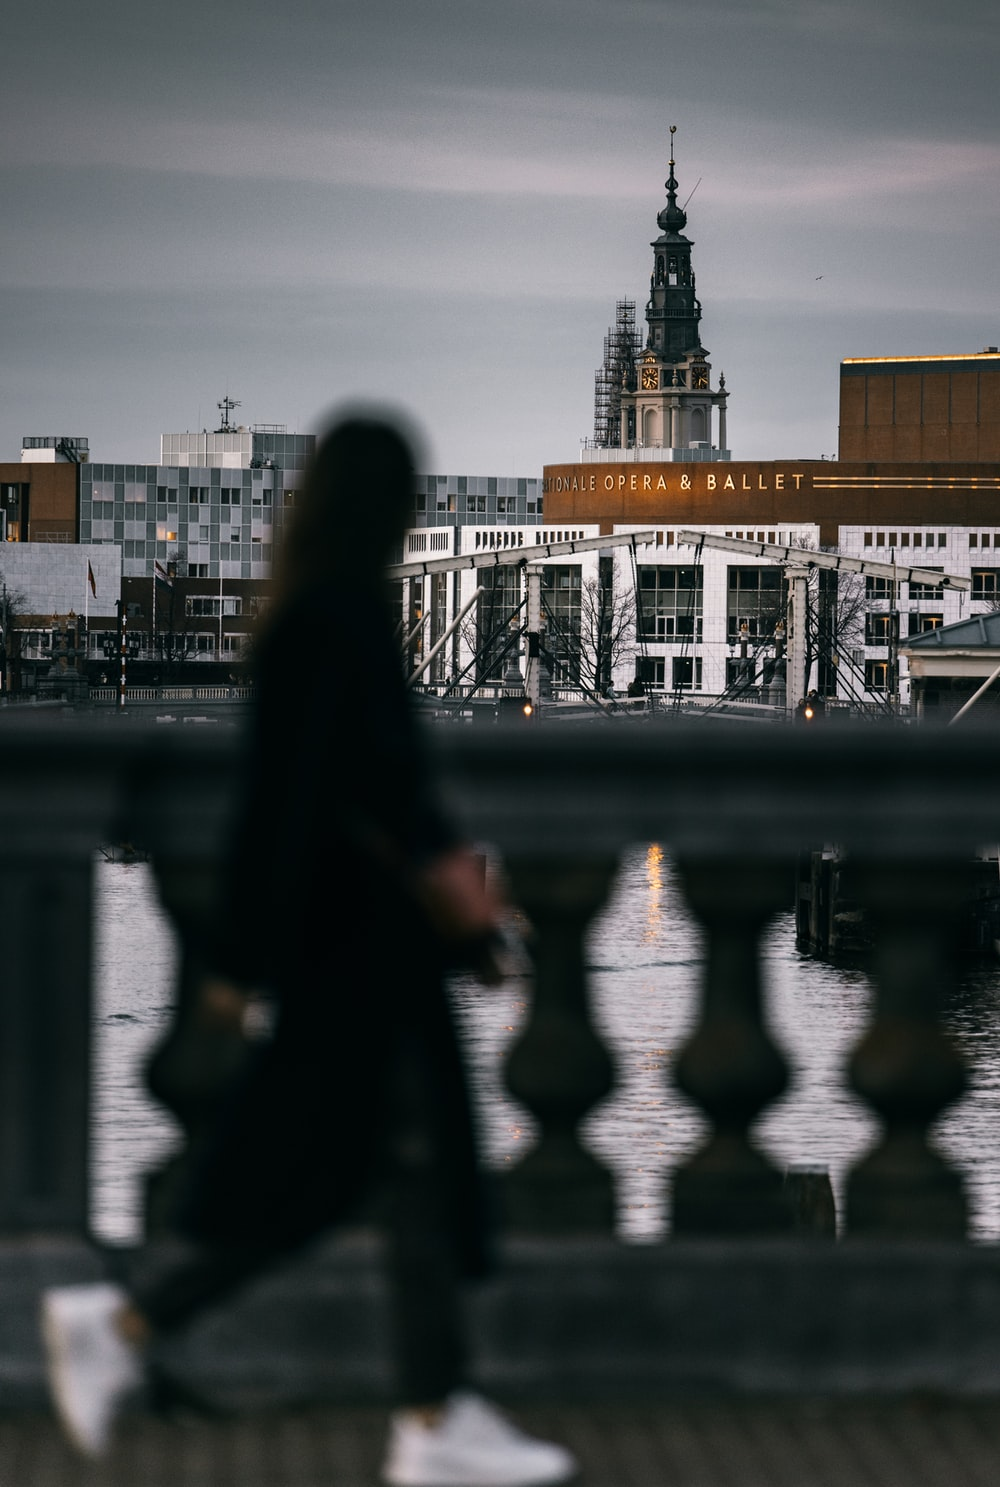 woman in black coat standing near body of water during daytime